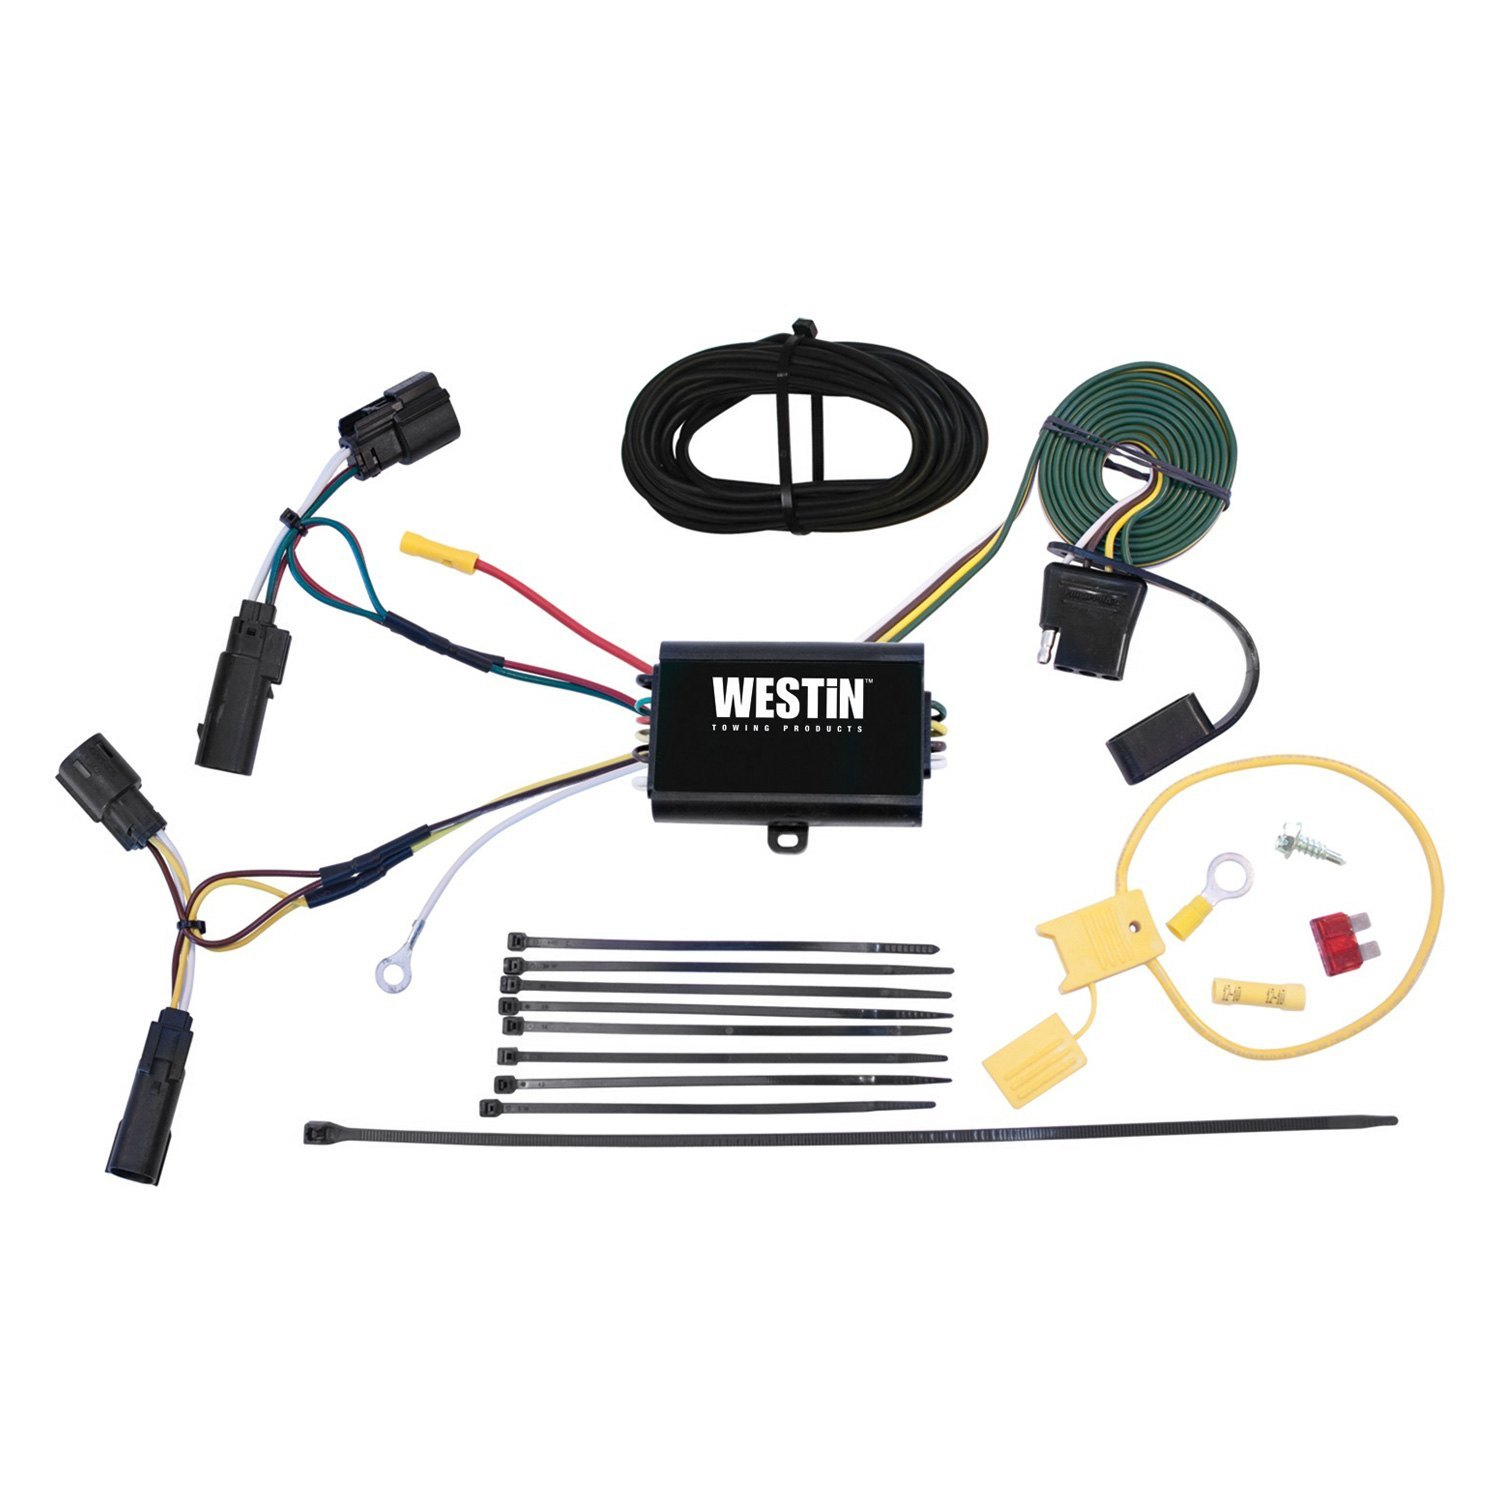 Ford Escape Towing Wiring Harness Diagram Schematics For 2013 2016 Westin 707742049334 Trailer